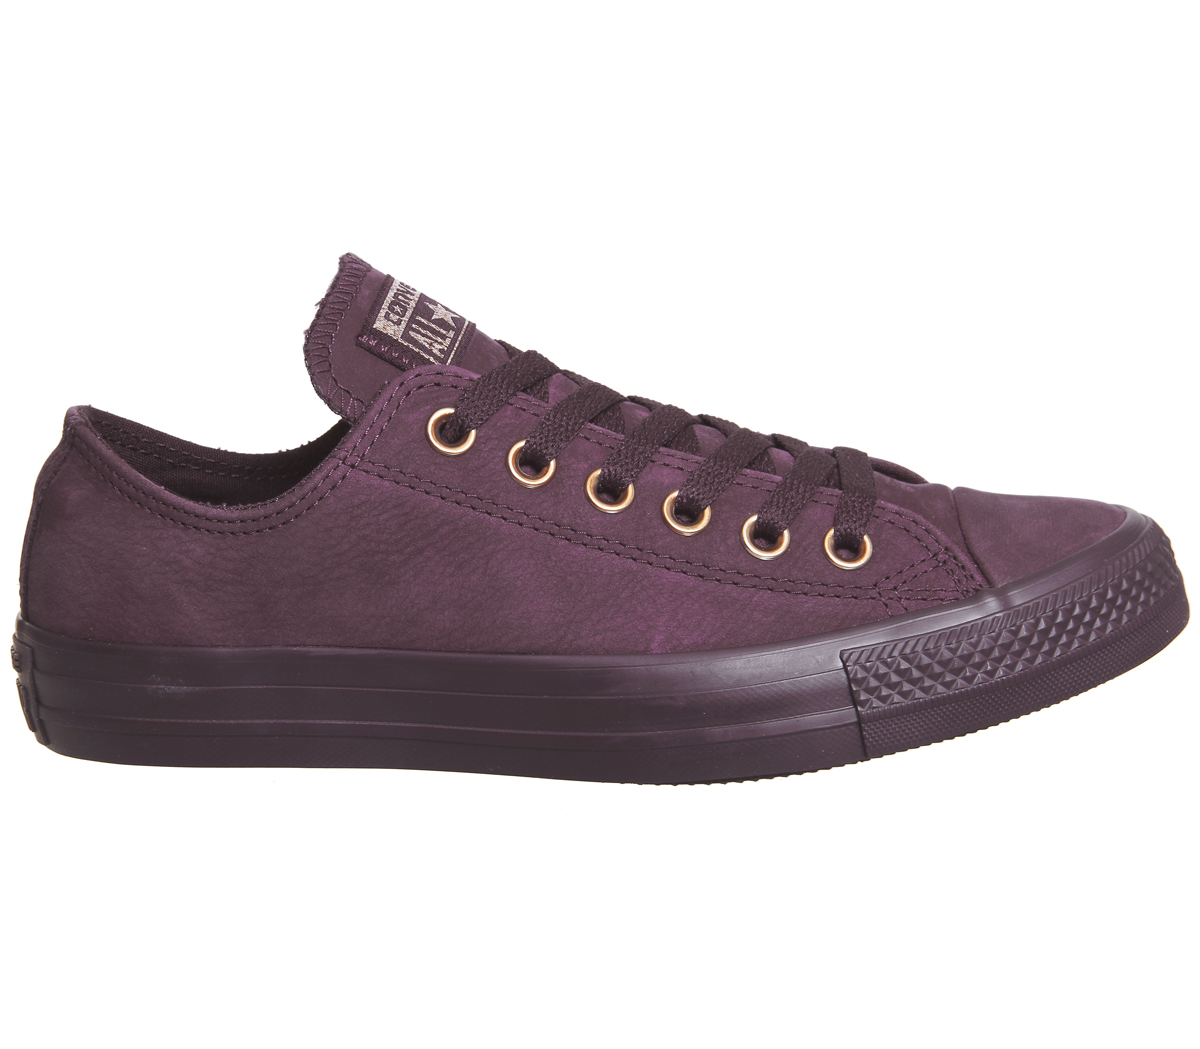 69ca77d57e4a Womens Converse All Star Low Leather DARK SANGRIA ROSE GOLD ...